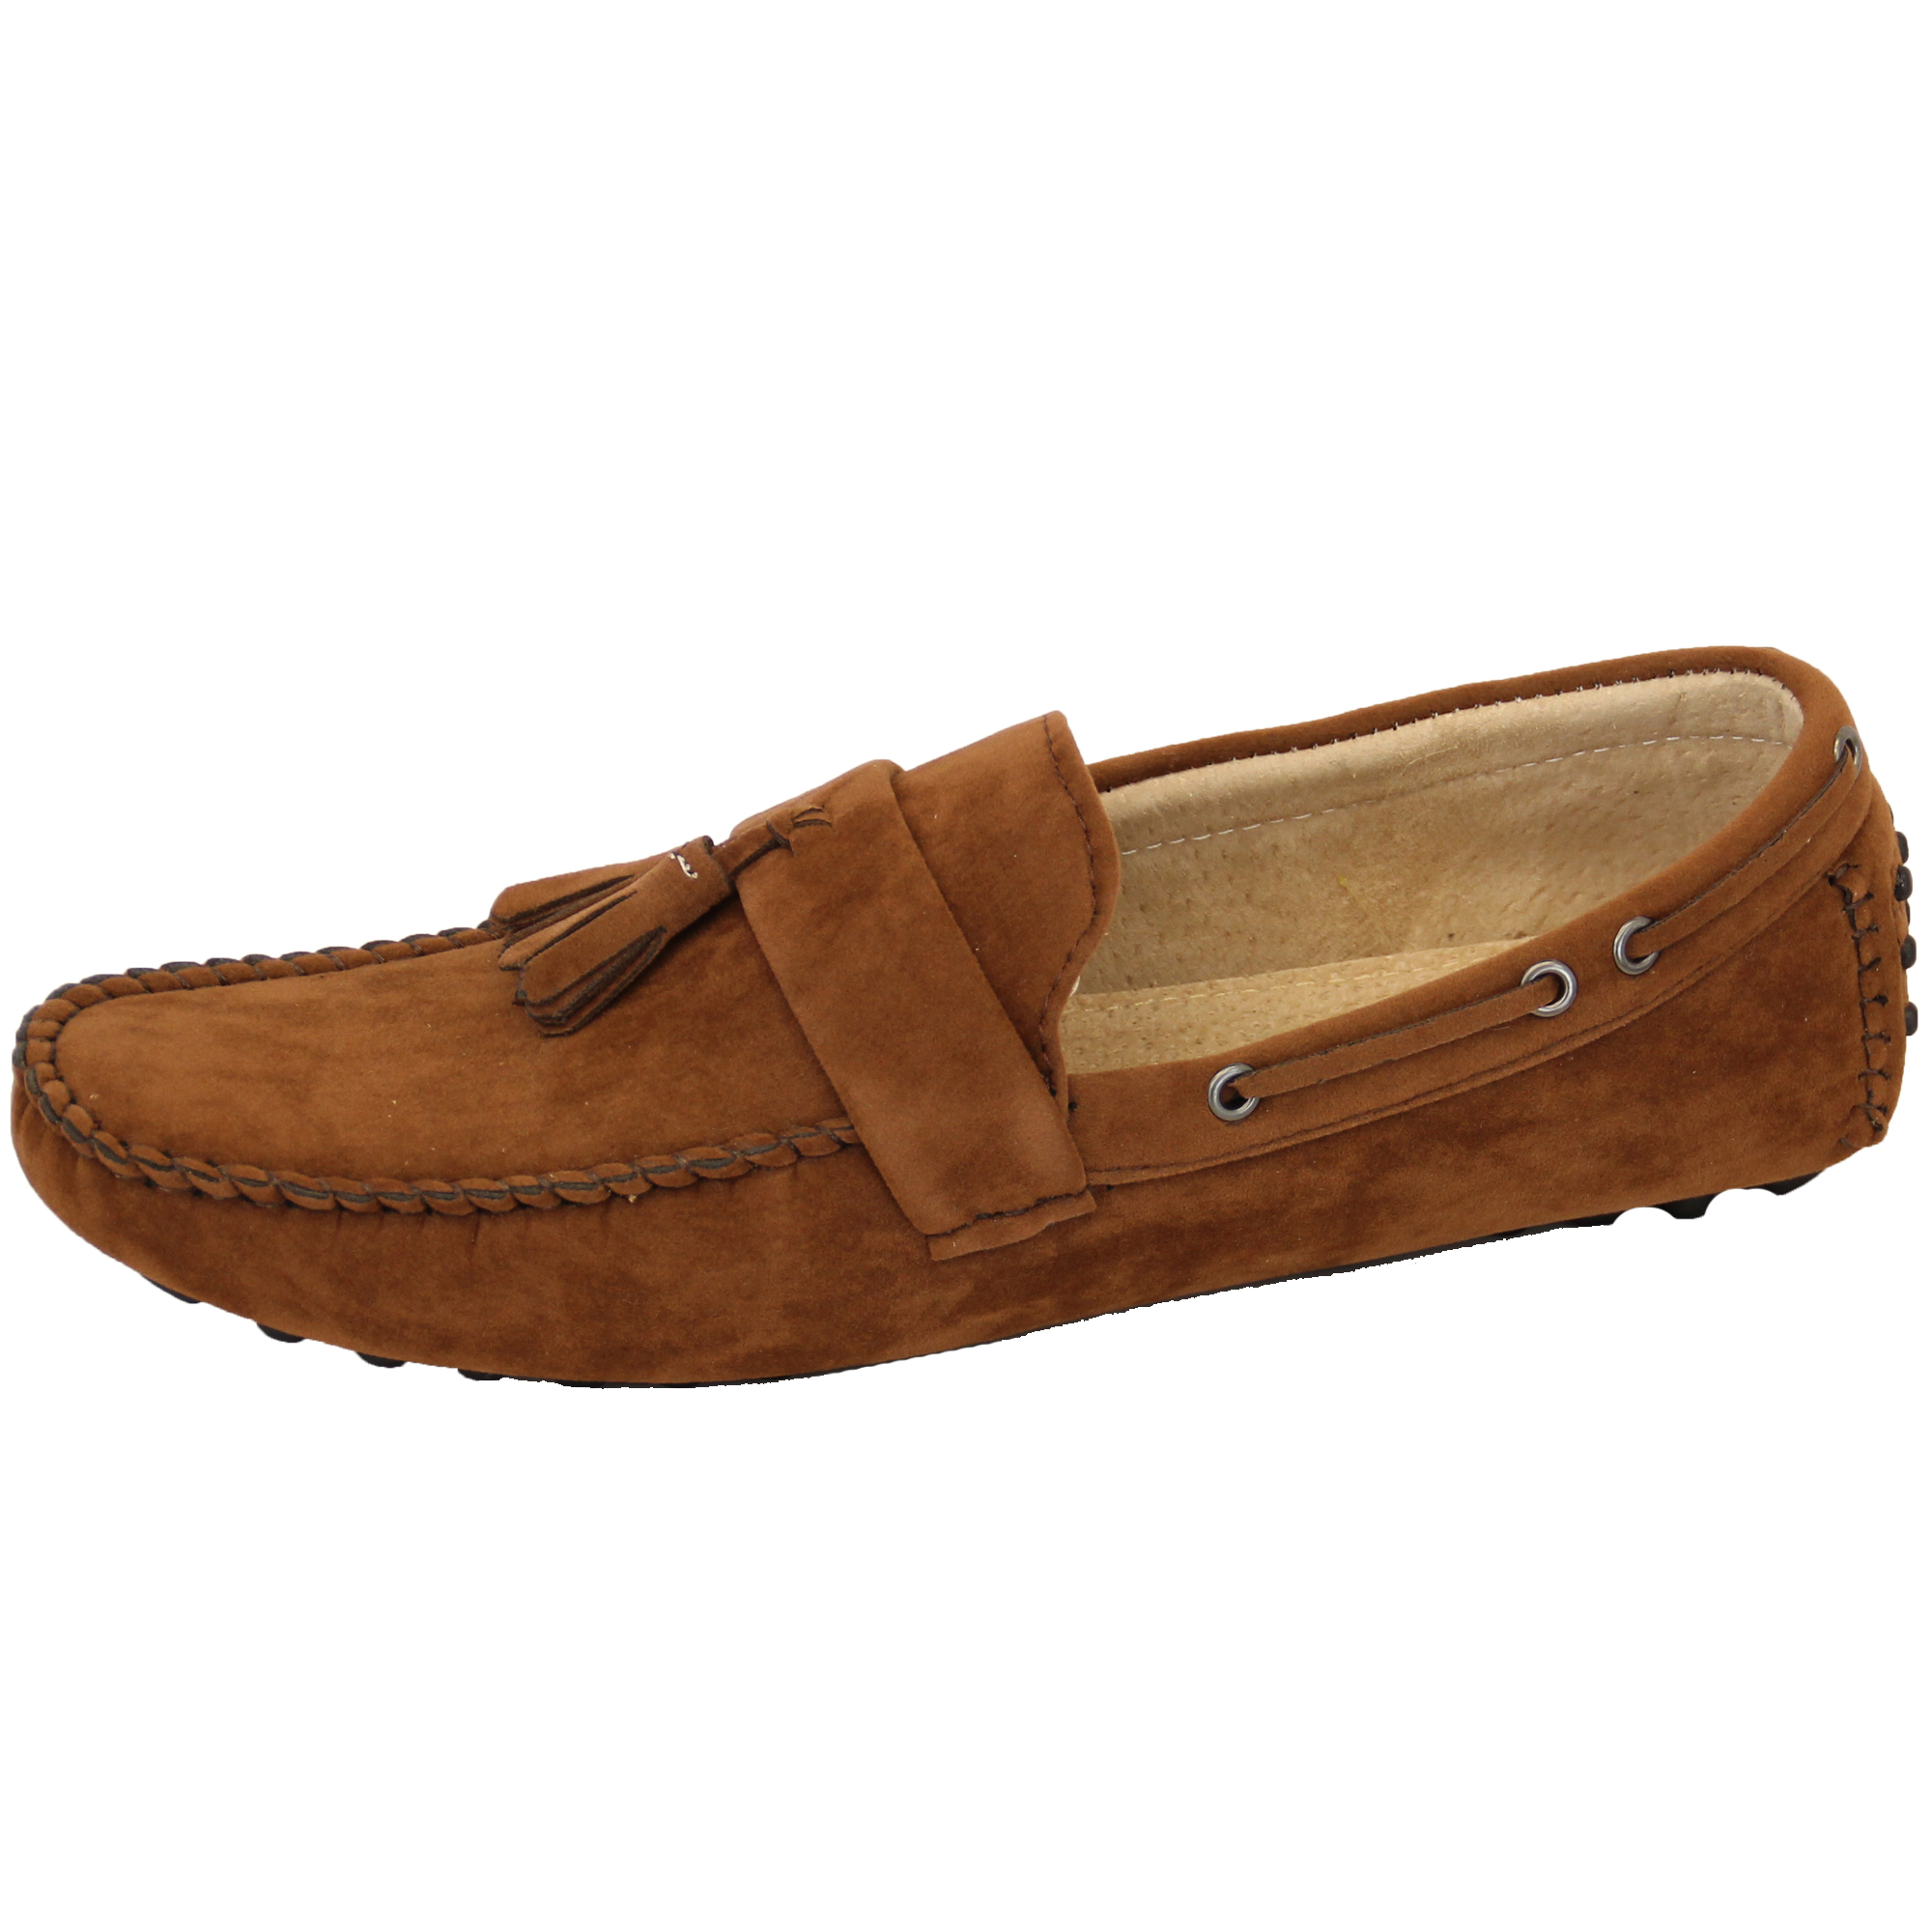 Mens-Moccasins-Suede-Leather-Look-Shoes-Boat-Slip-On-Tassel-Loafers-Smart-Formal thumbnail 10